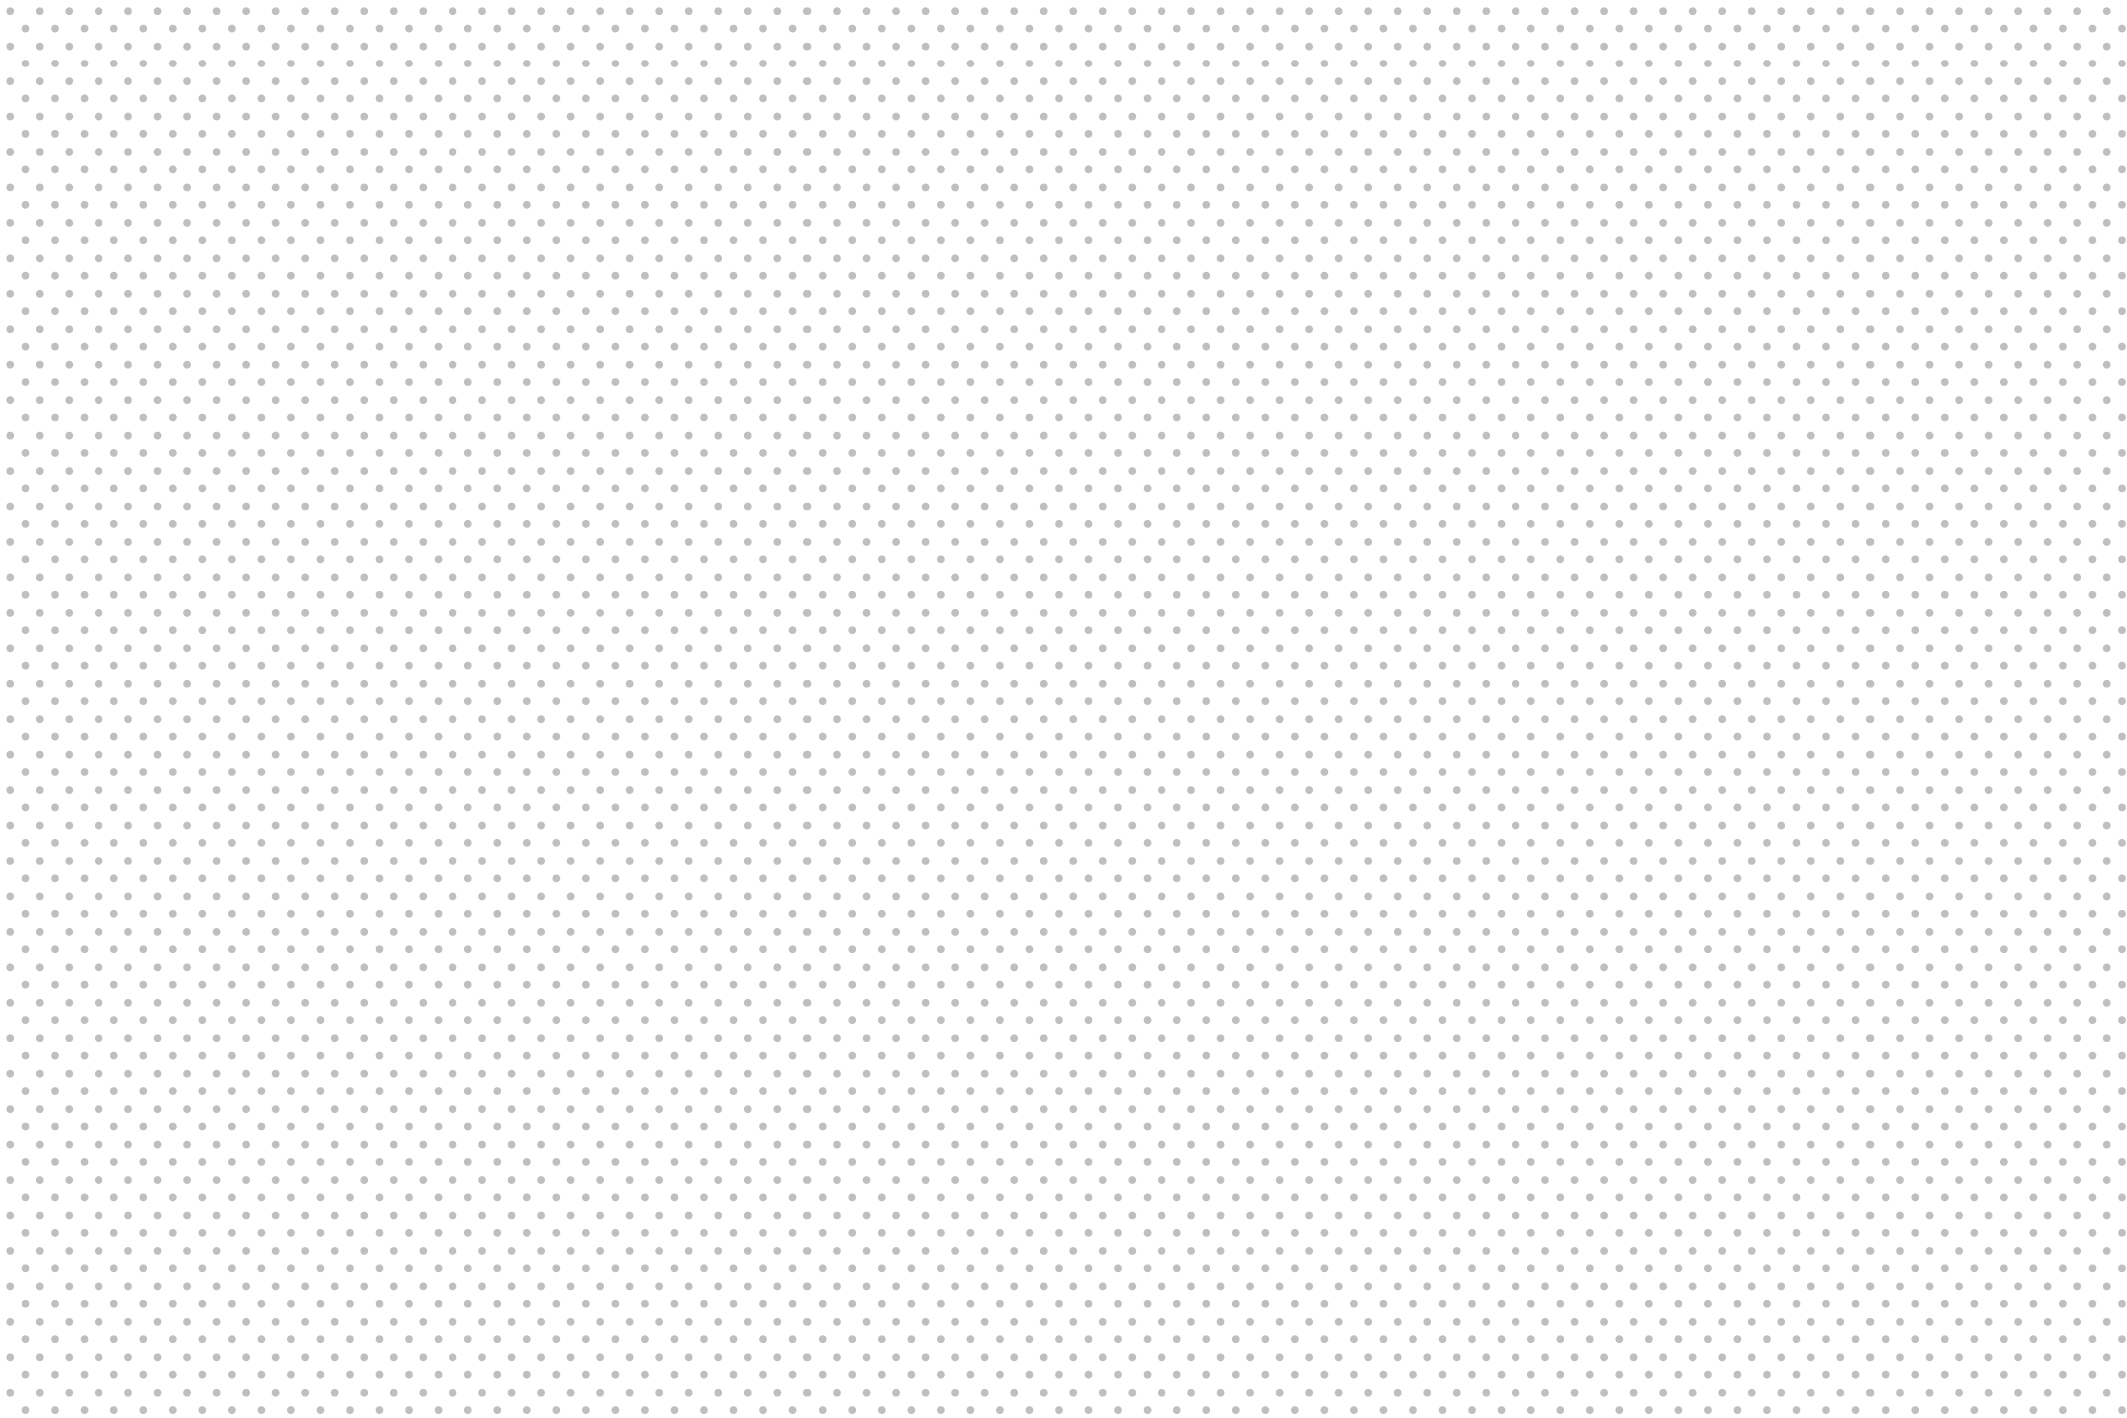 Set of dotted seamless patterns. example image 11